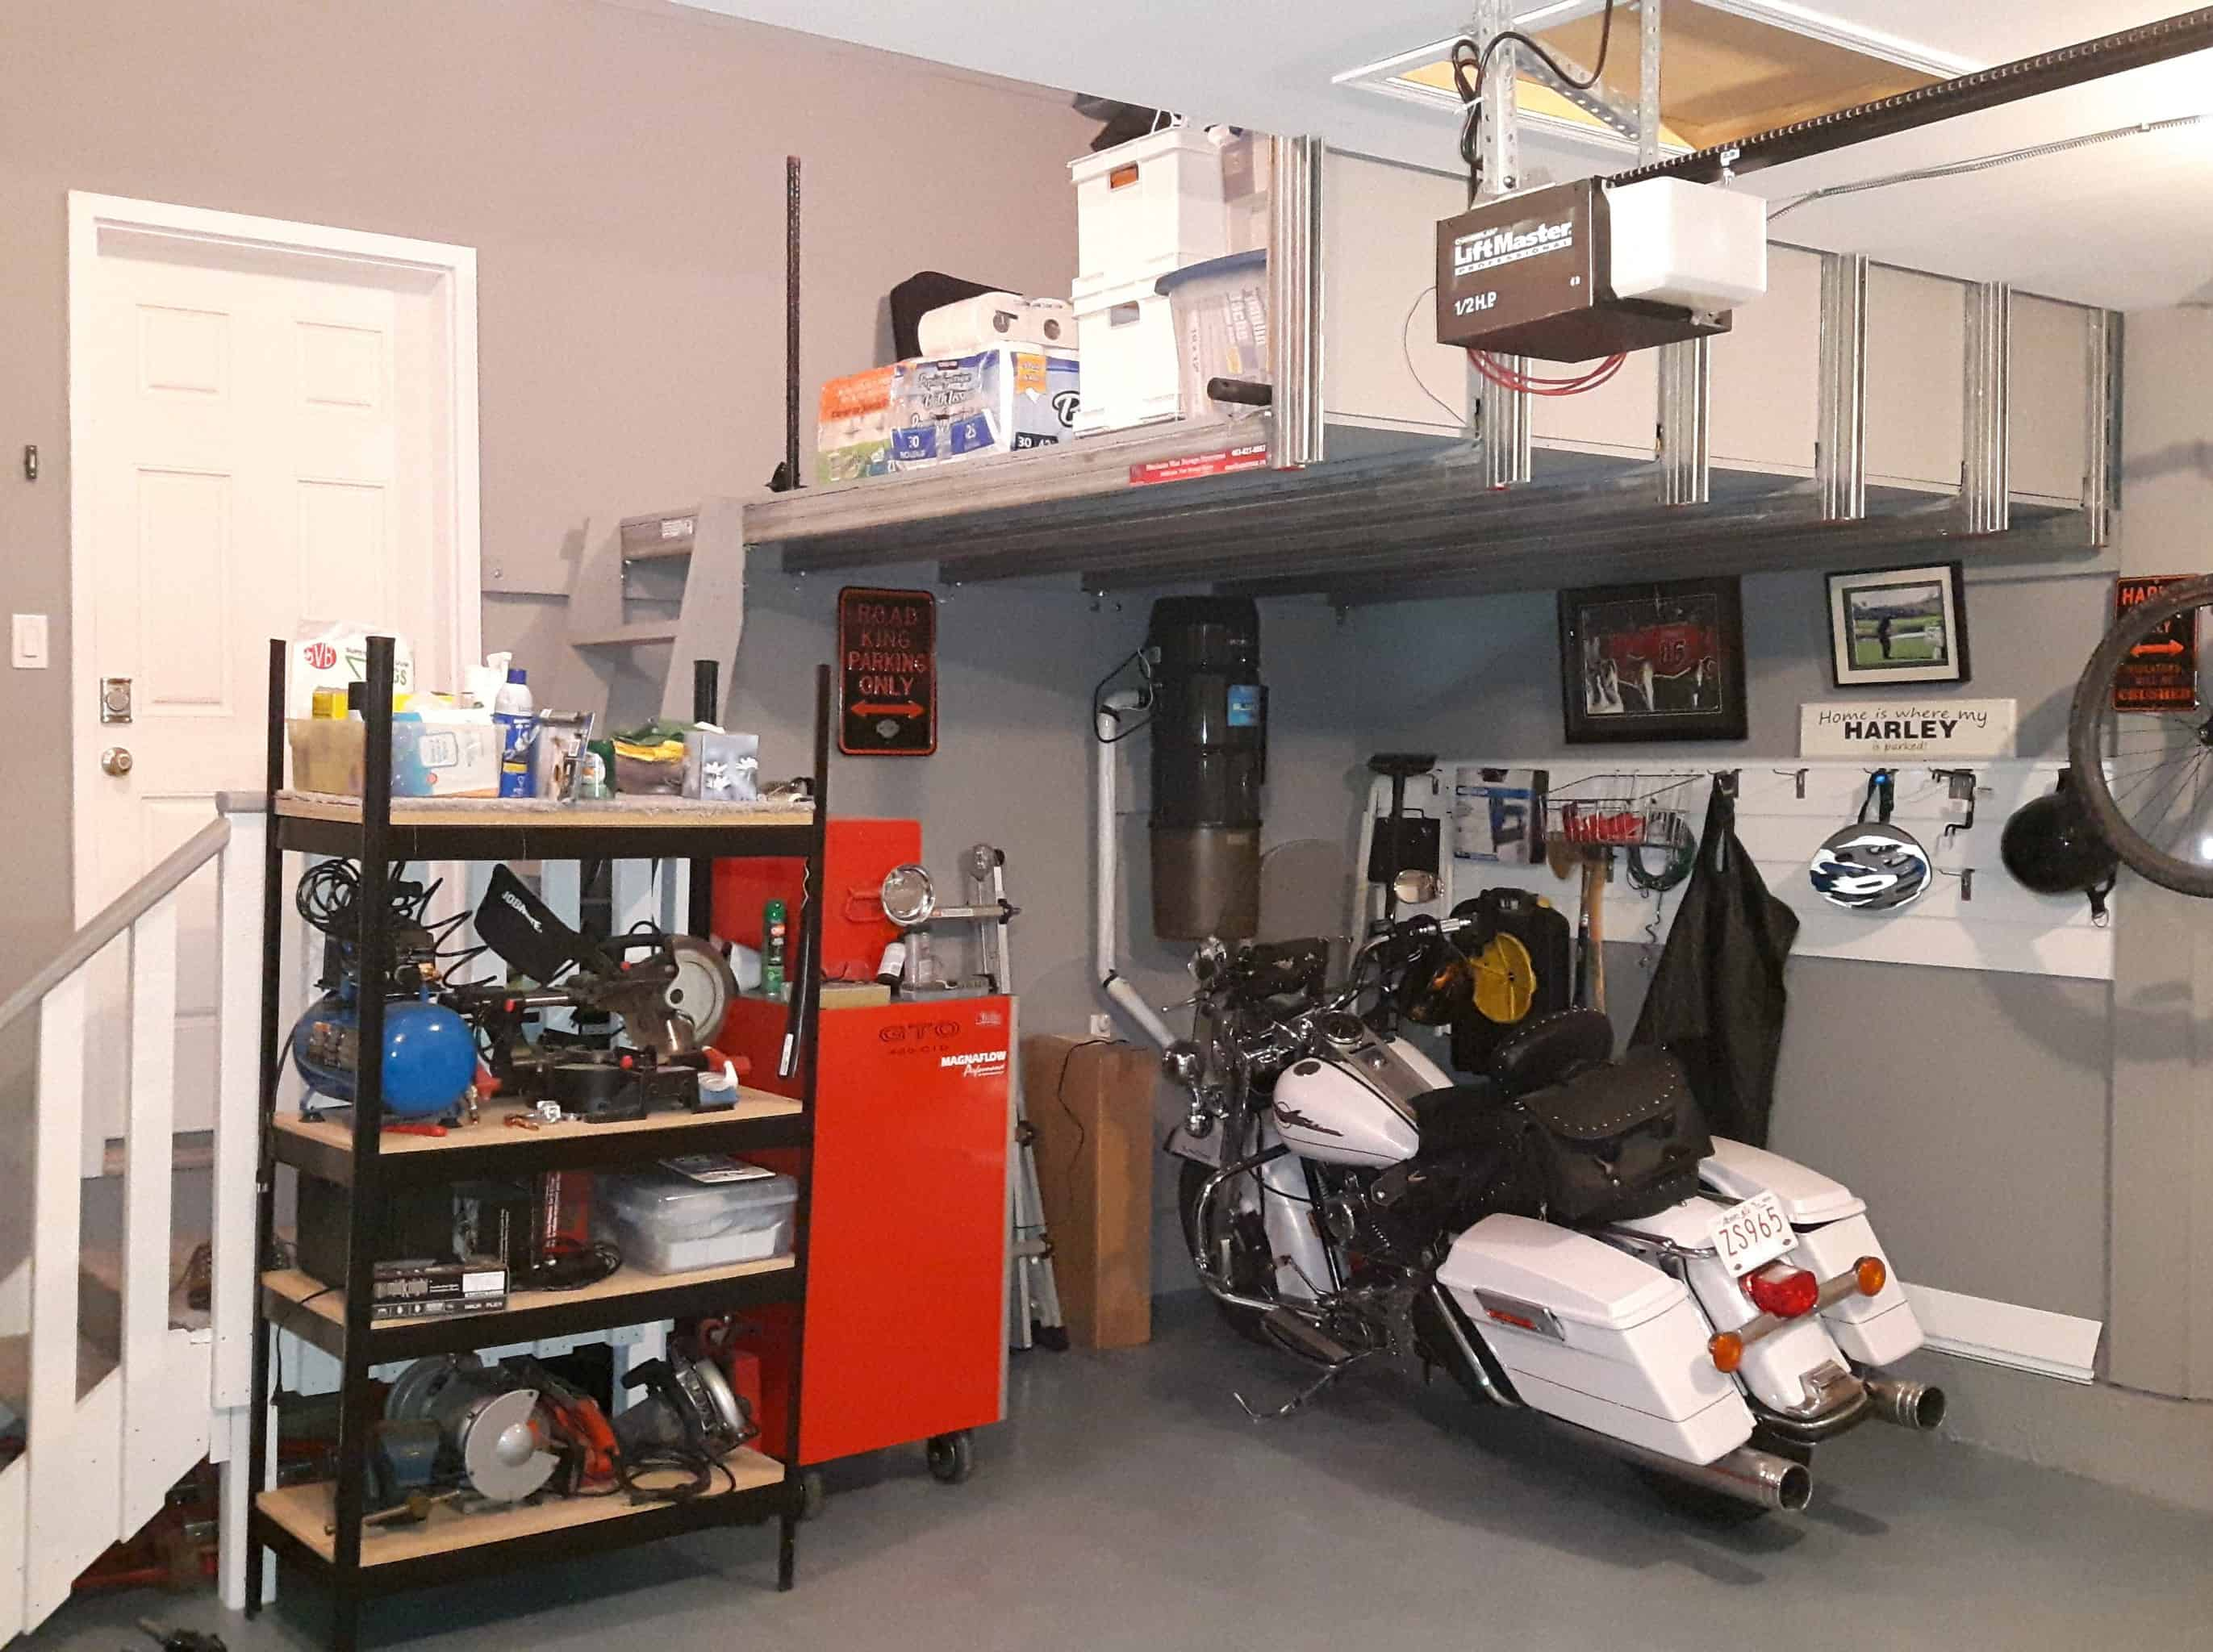 Home for the Harley